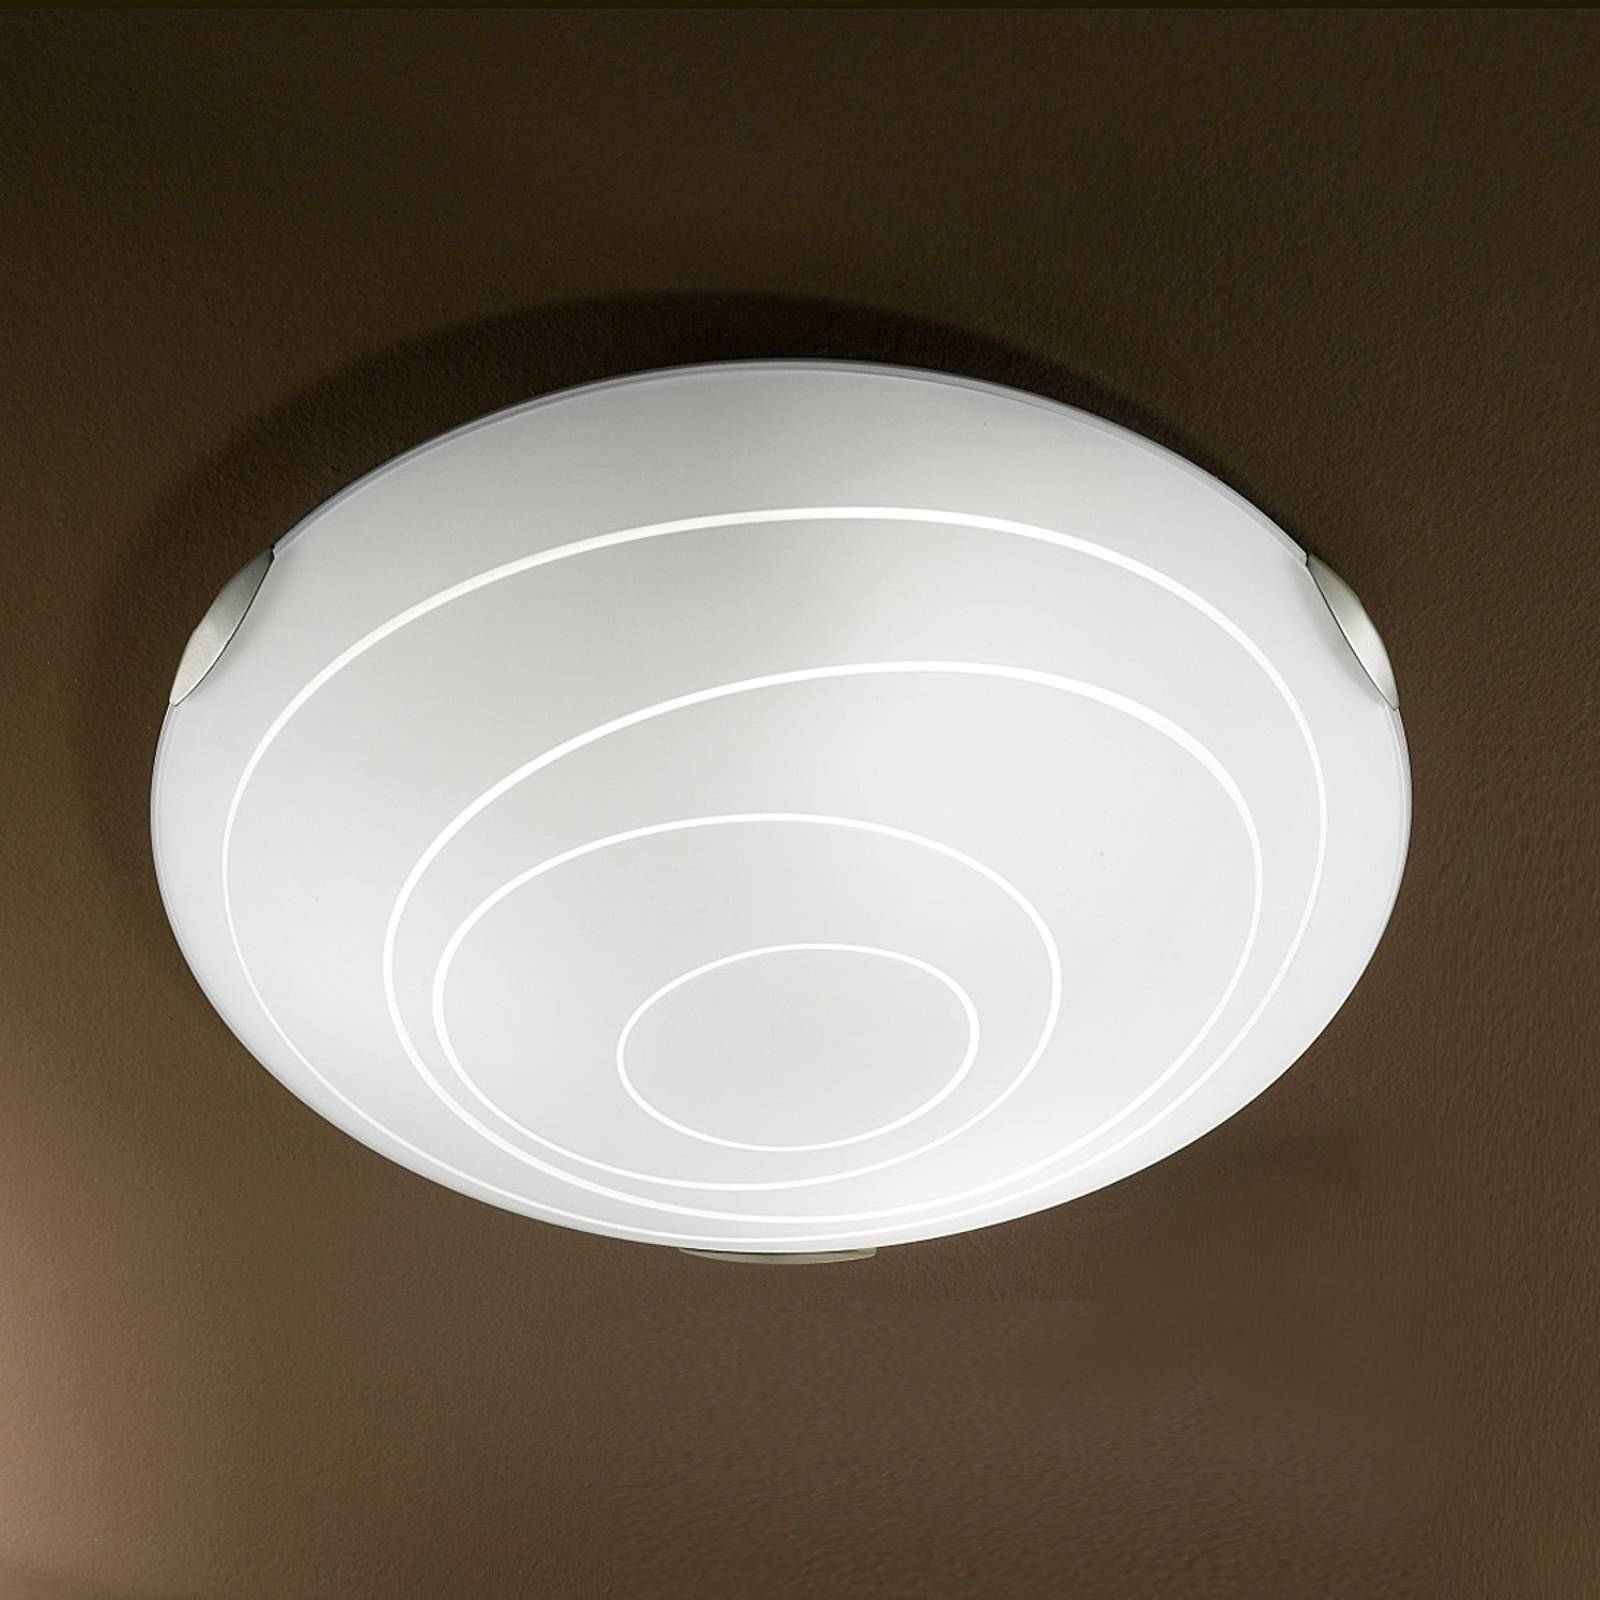 Kent Ceiling Light Round White from Fabas Luce